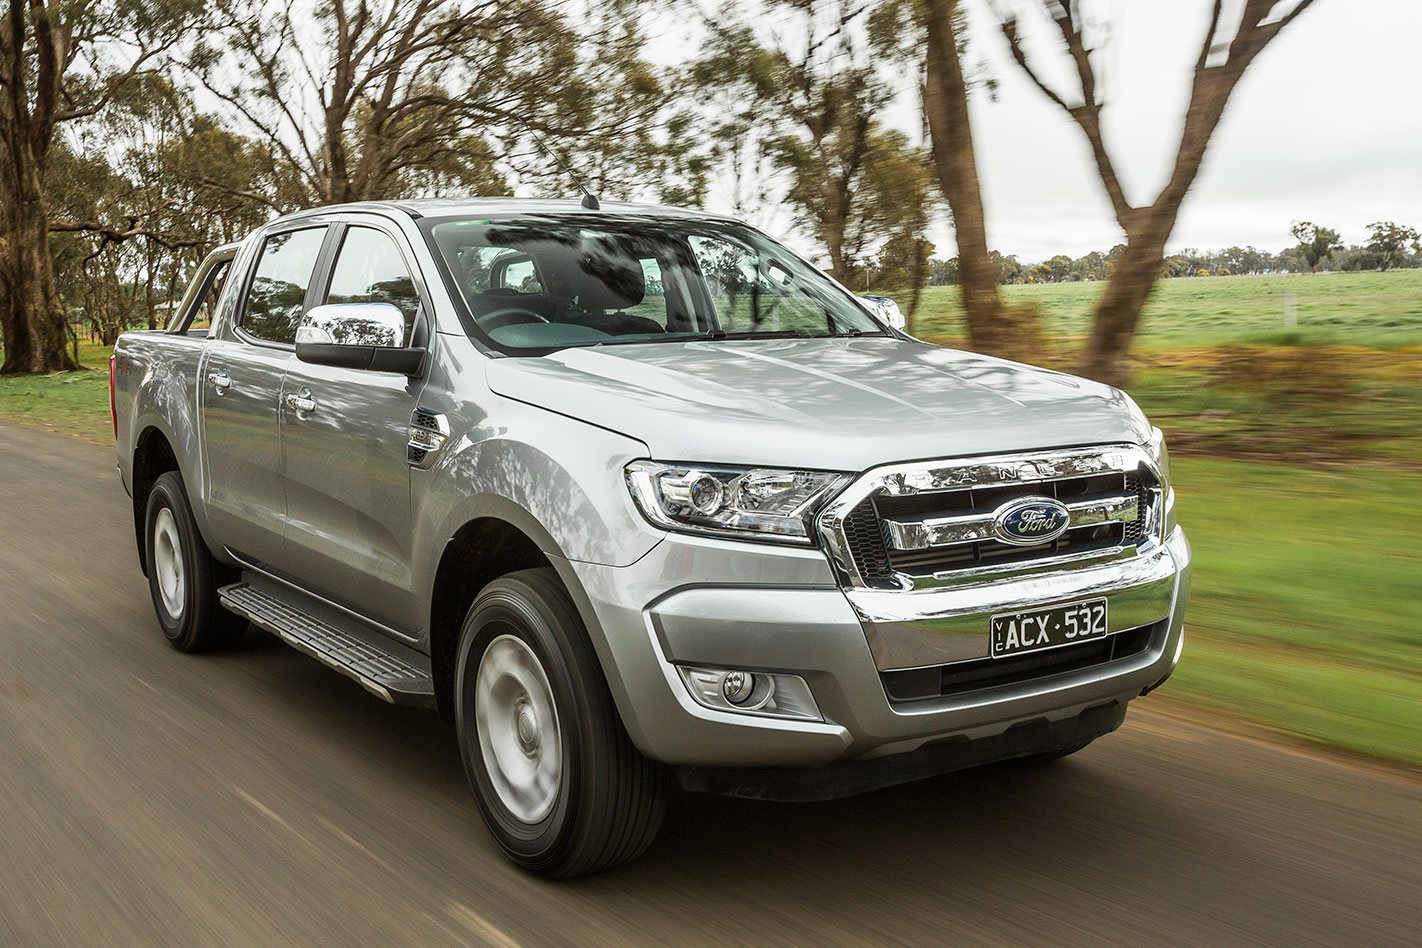 ford ranger review prices features and specifications. Black Bedroom Furniture Sets. Home Design Ideas